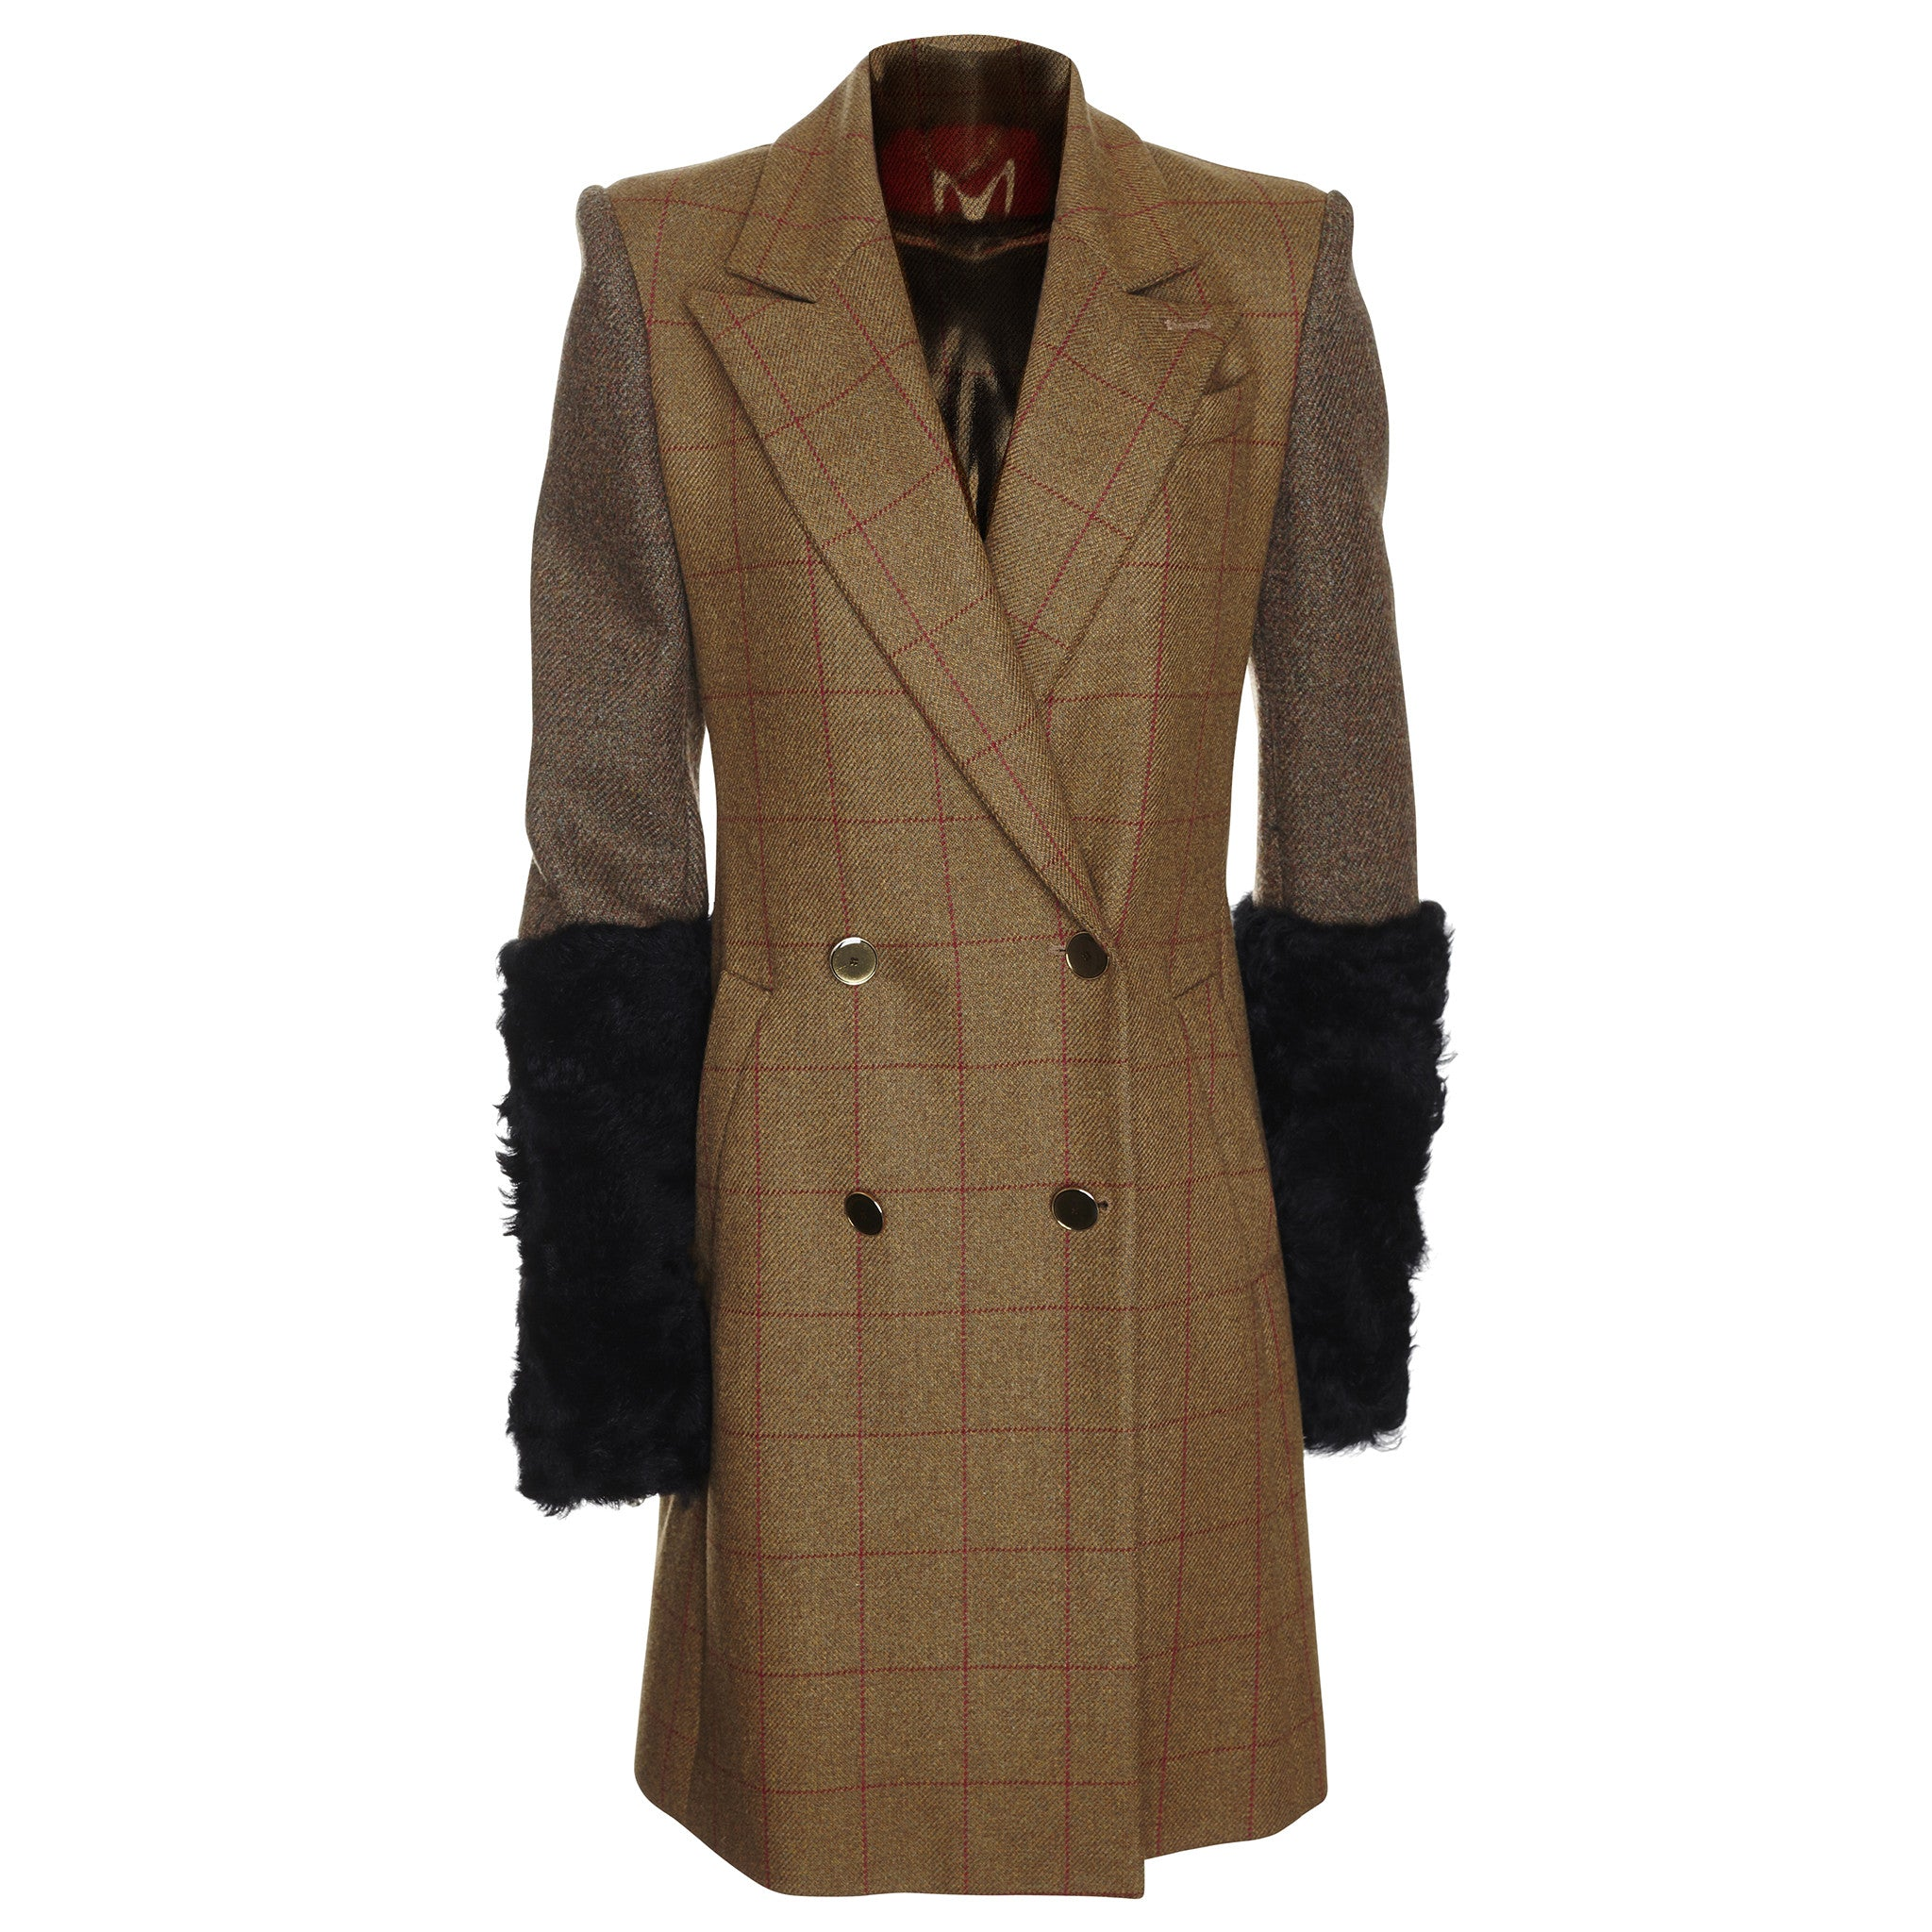 Heritage Shearling Officer's Coat